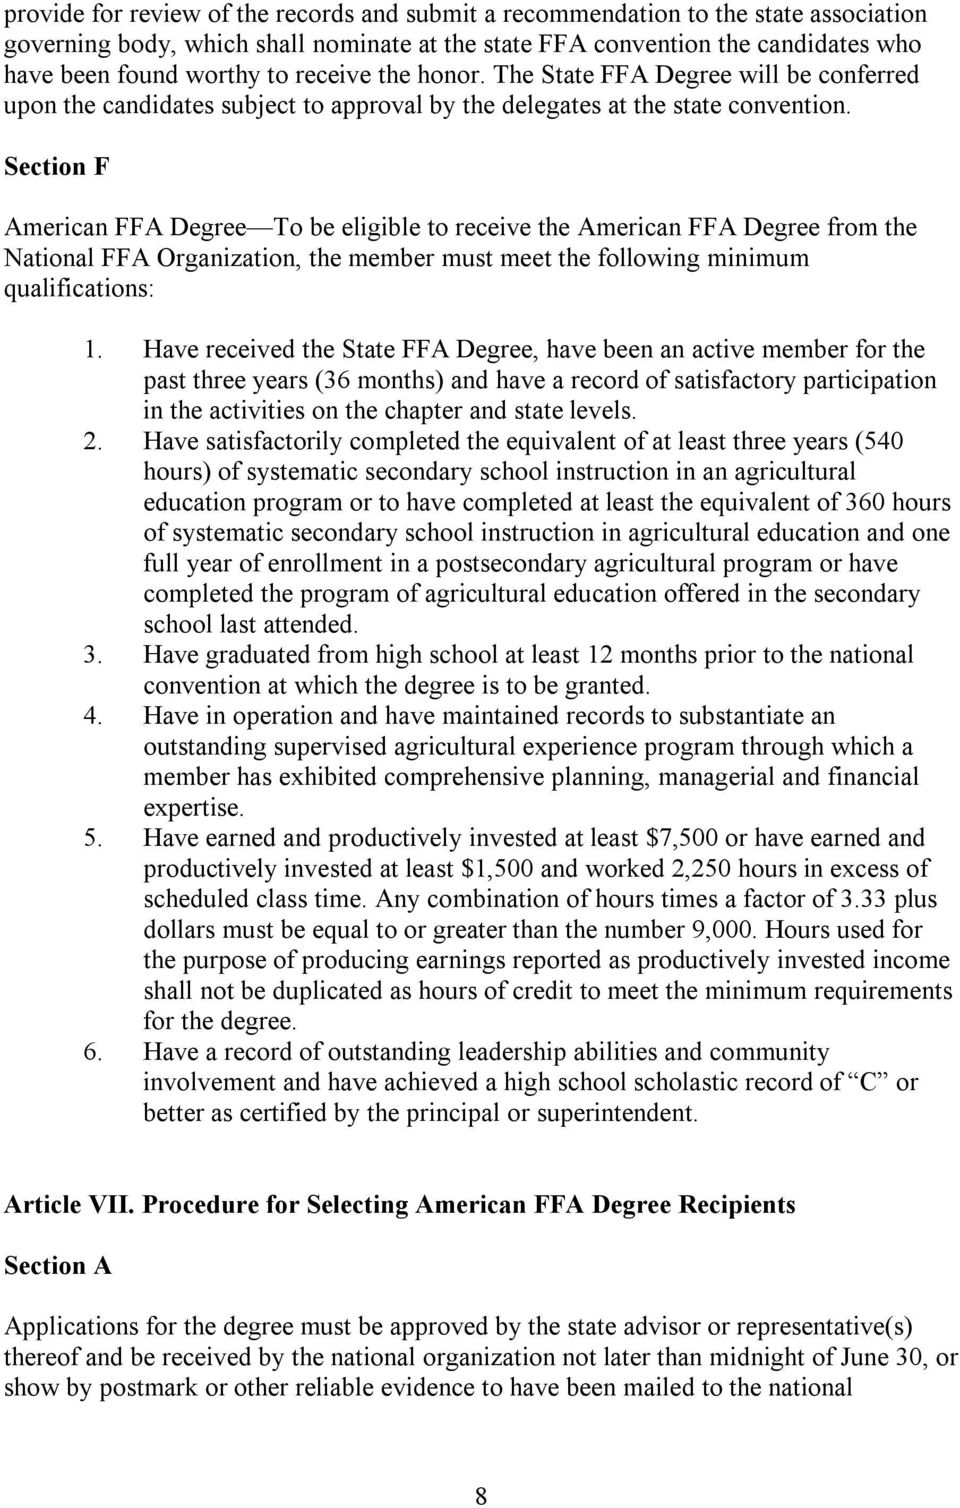 Section F American FFA Degree To be eligible to receive the American FFA Degree from the National FFA Organization, the member must meet the following minimum qualifications: 1.